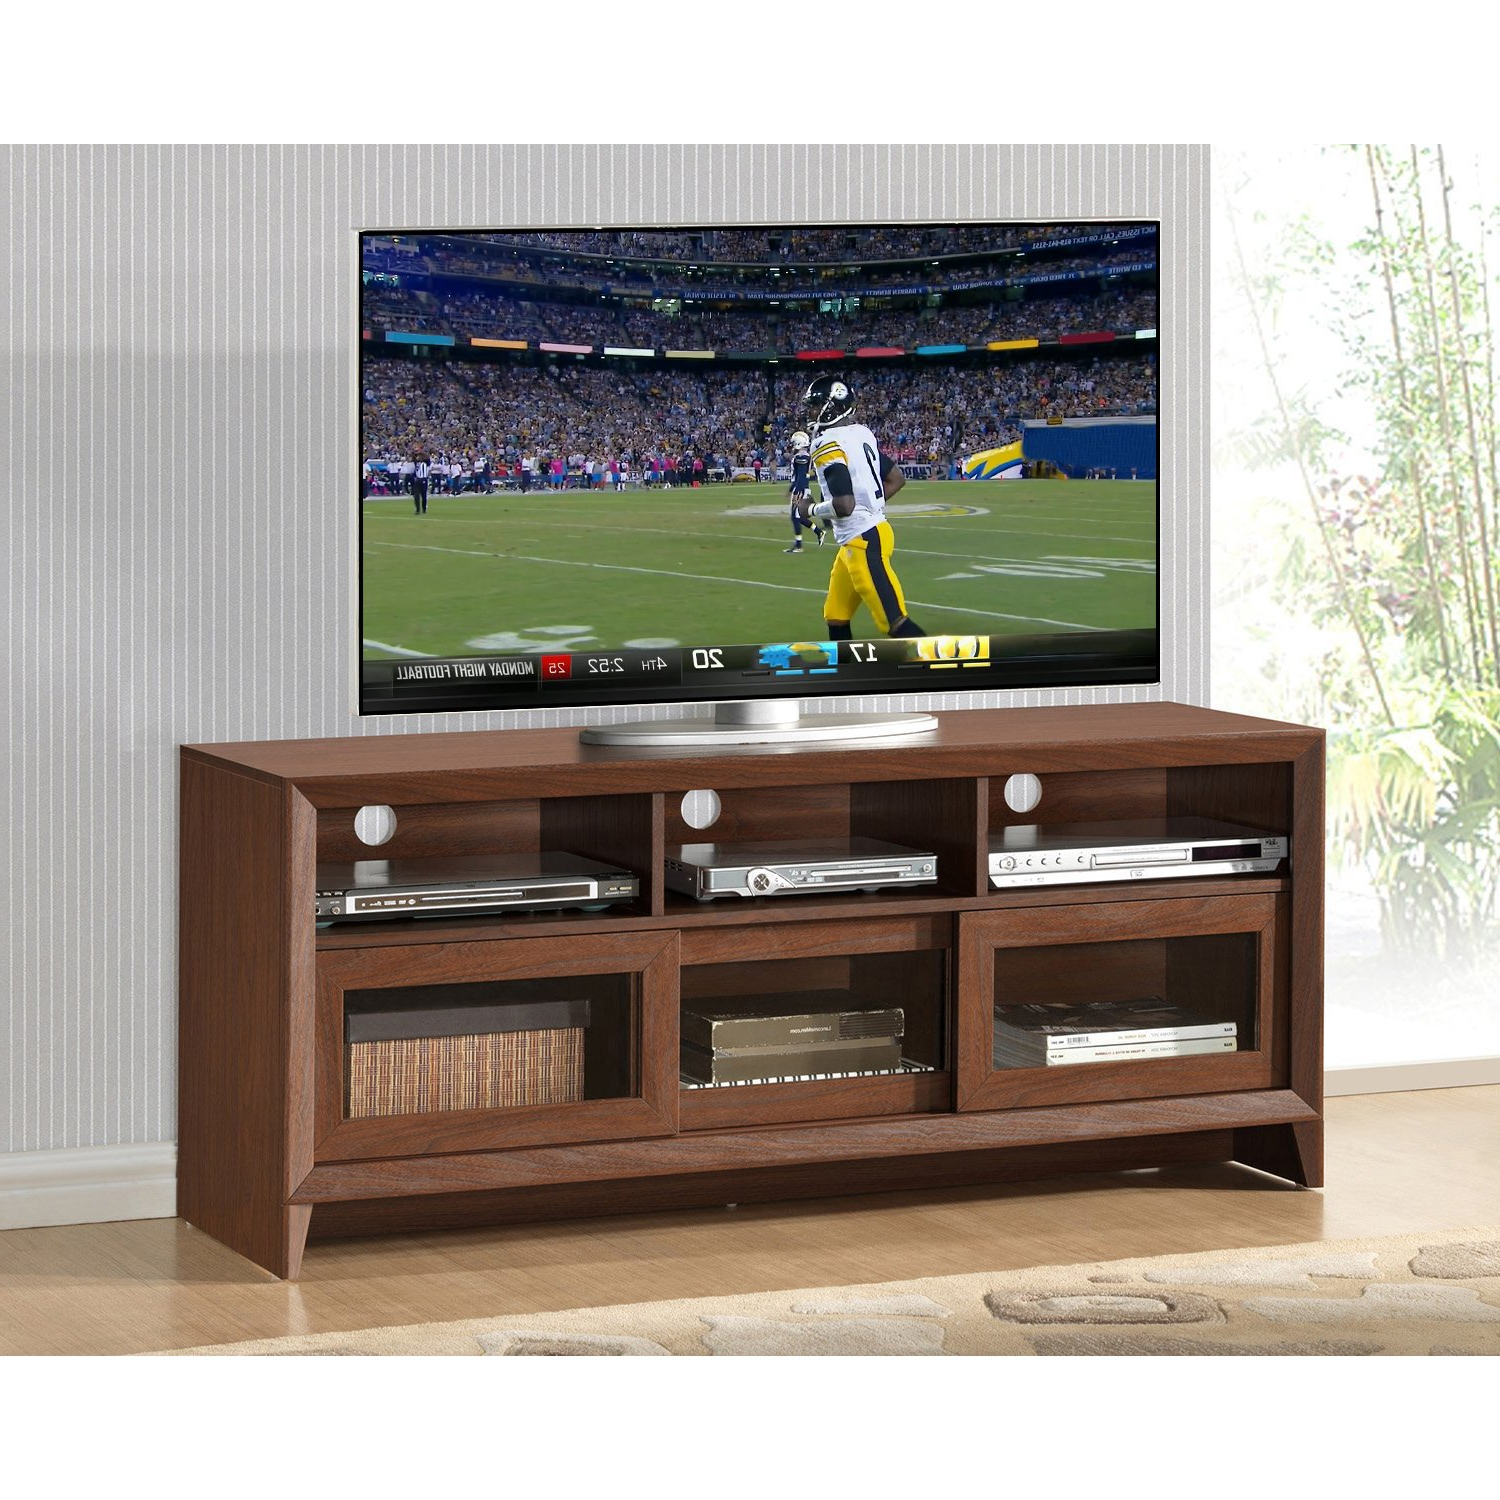 Fashionable Urban Designs Modern Tv Stand With Storage For Tvs Up To 60 Inches In Modern Tv Stands For 60 Inch Tvs (View 3 of 20)